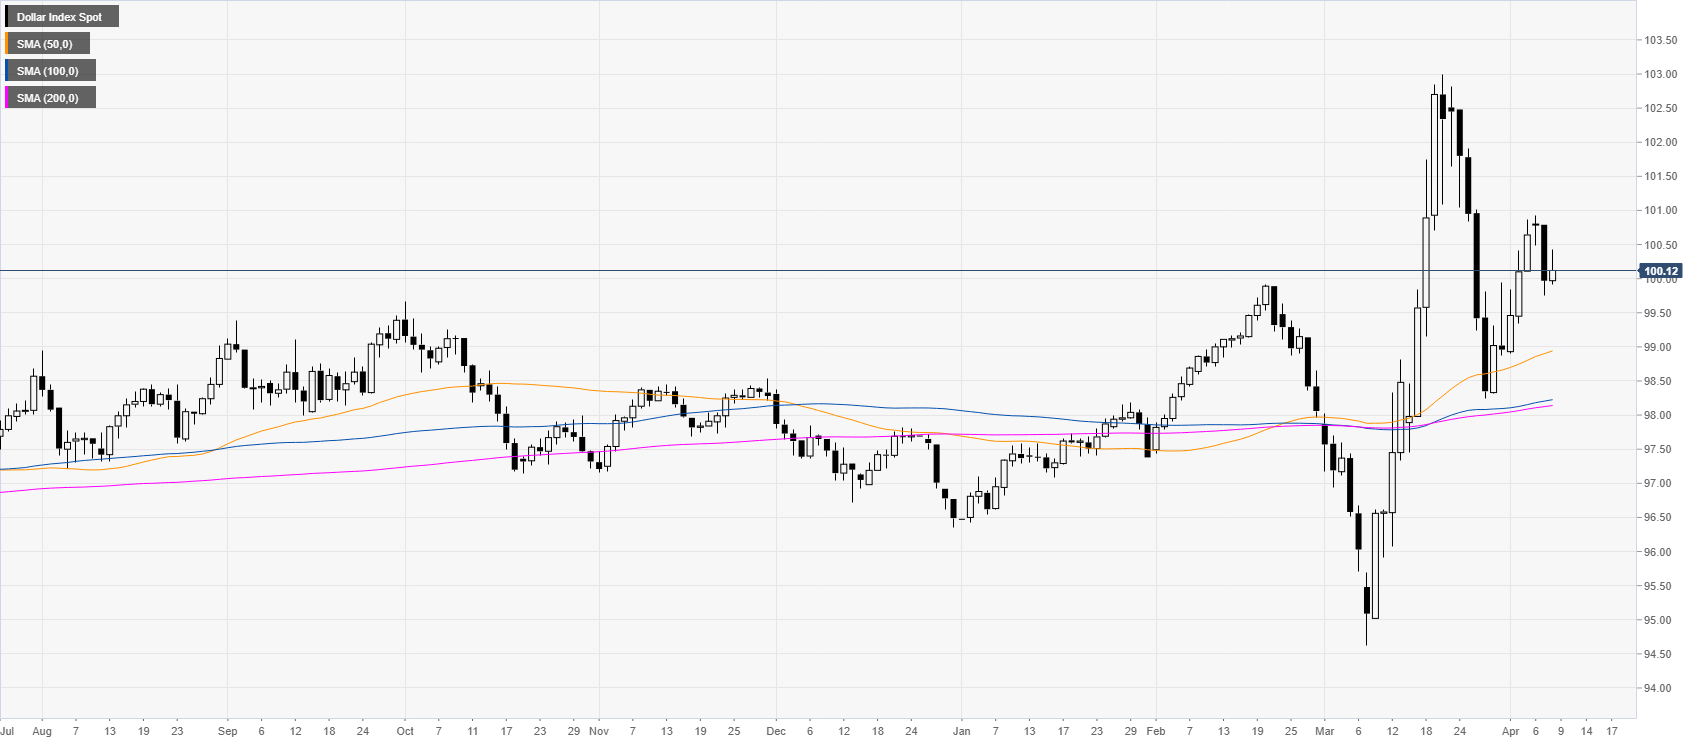 US Dollar Index Asia Price Forecast: DXY's bull trend remains intact, trades above 100.00 mark